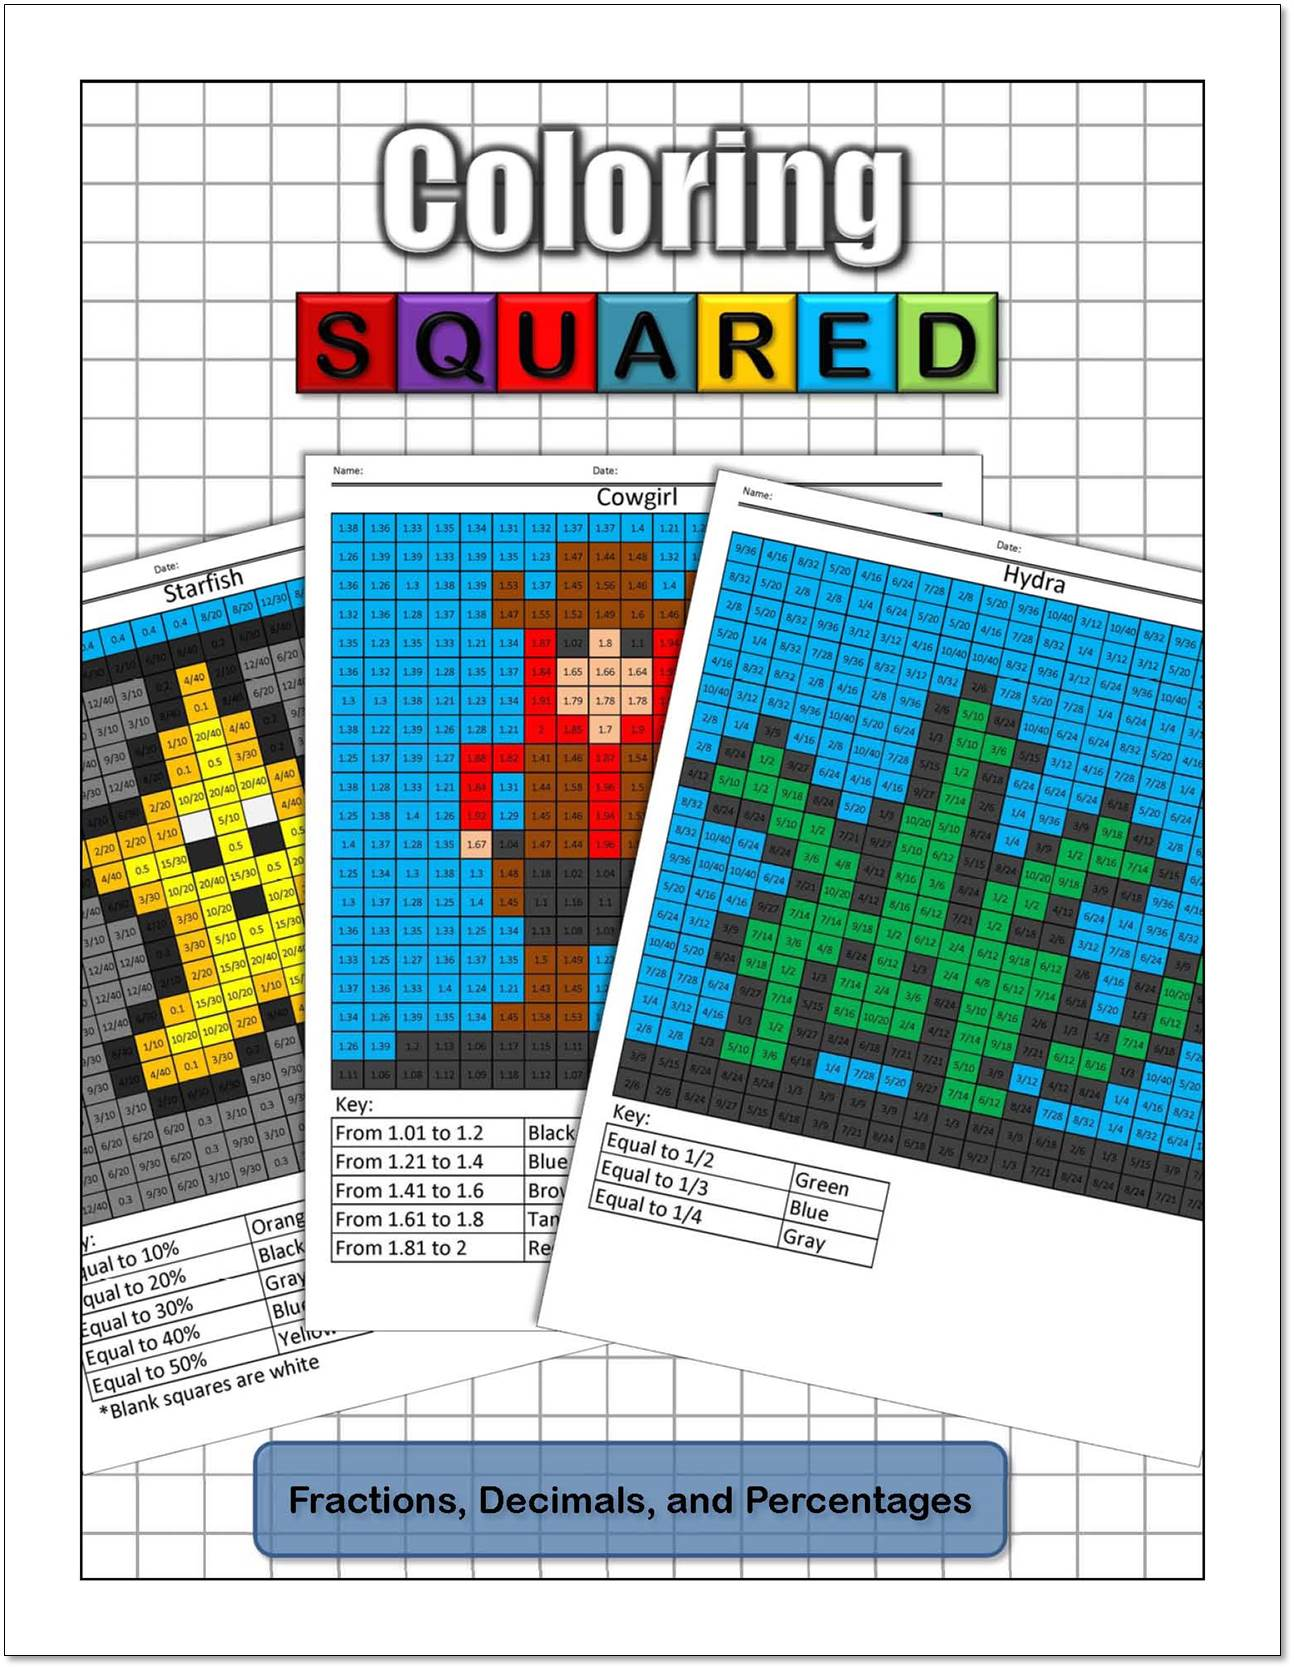 Fractions, Decimals, and Percentages - Coloring Squared